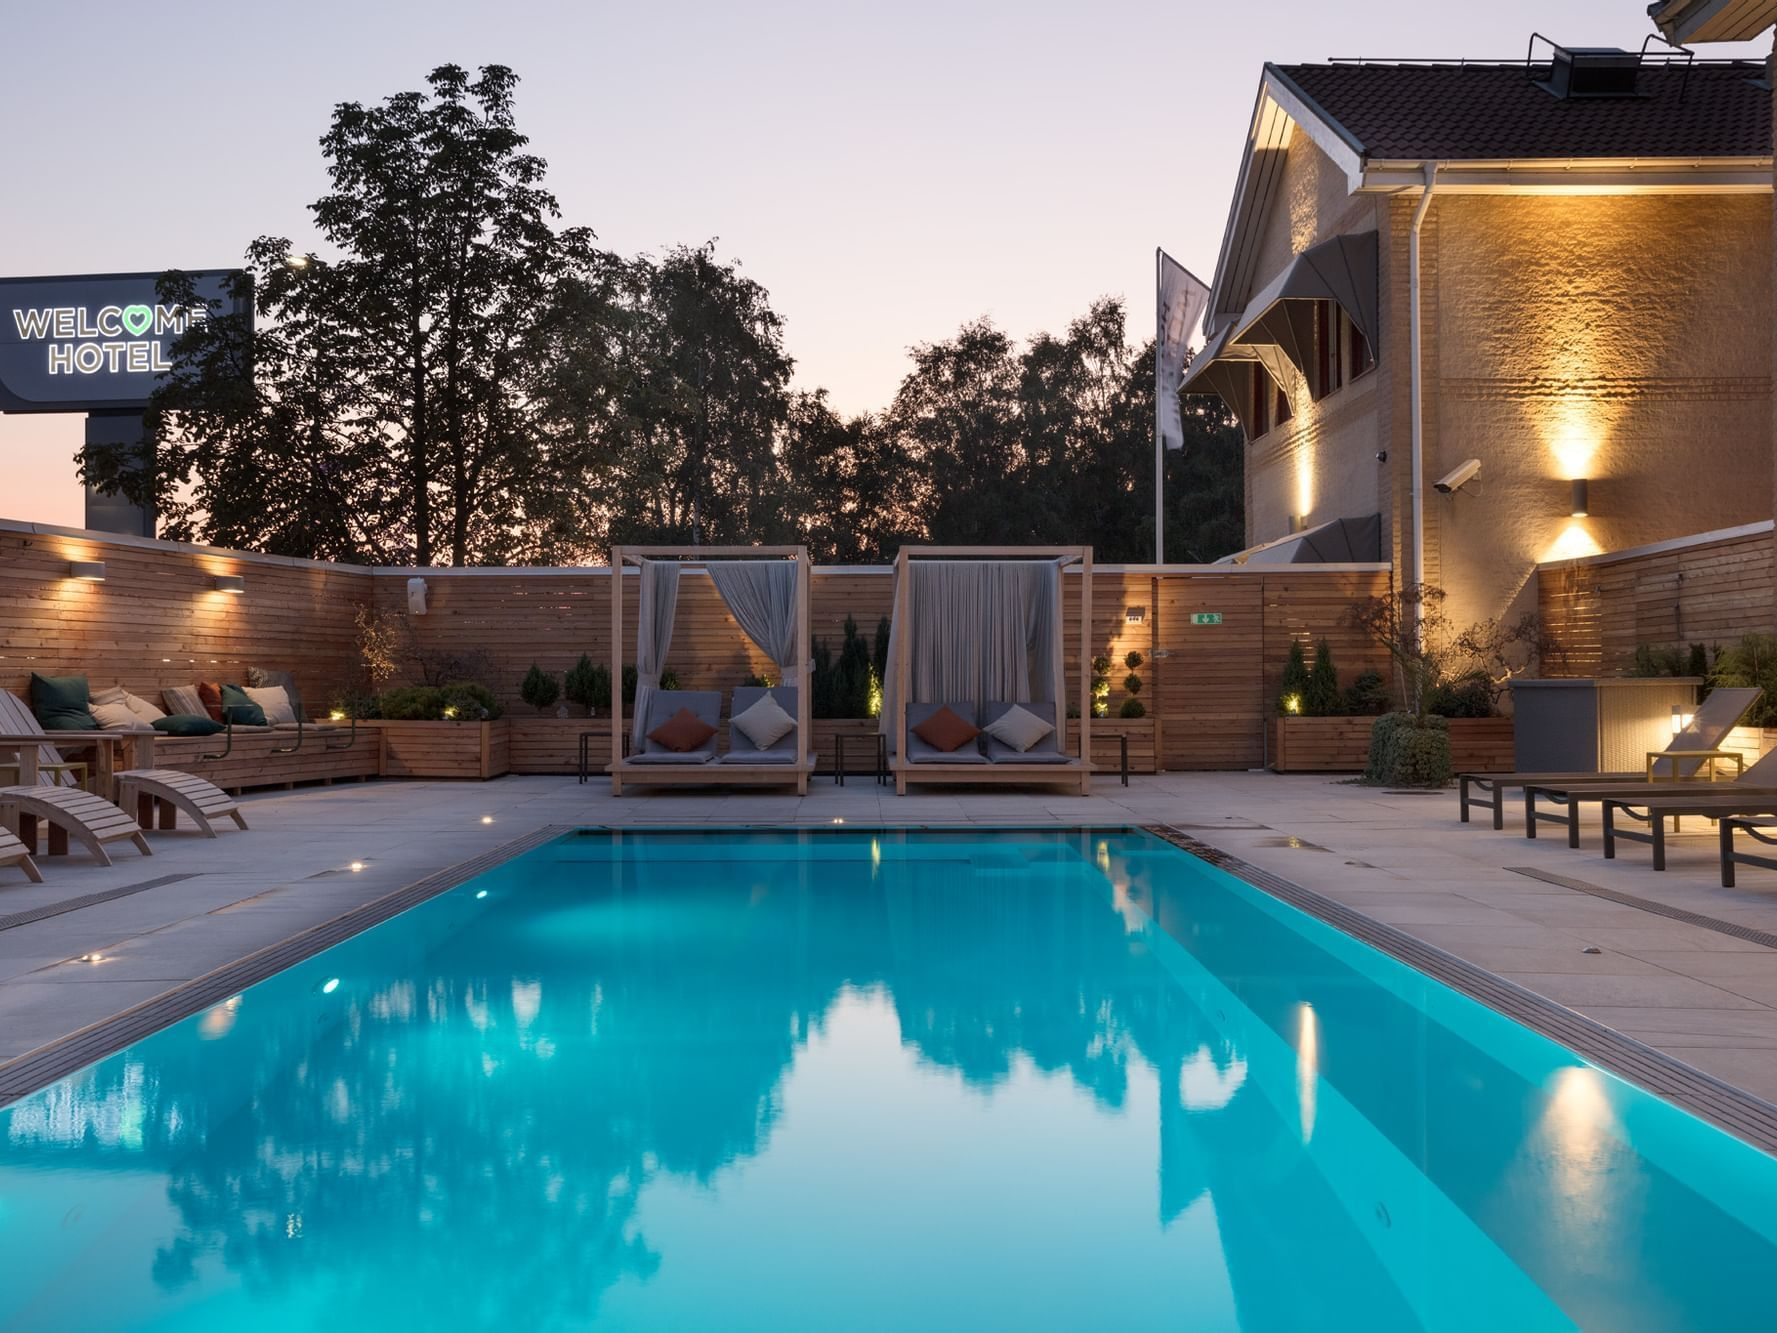 Spa Get Away Late Offer at Welcome Hotel in Järfälla near Stockholm